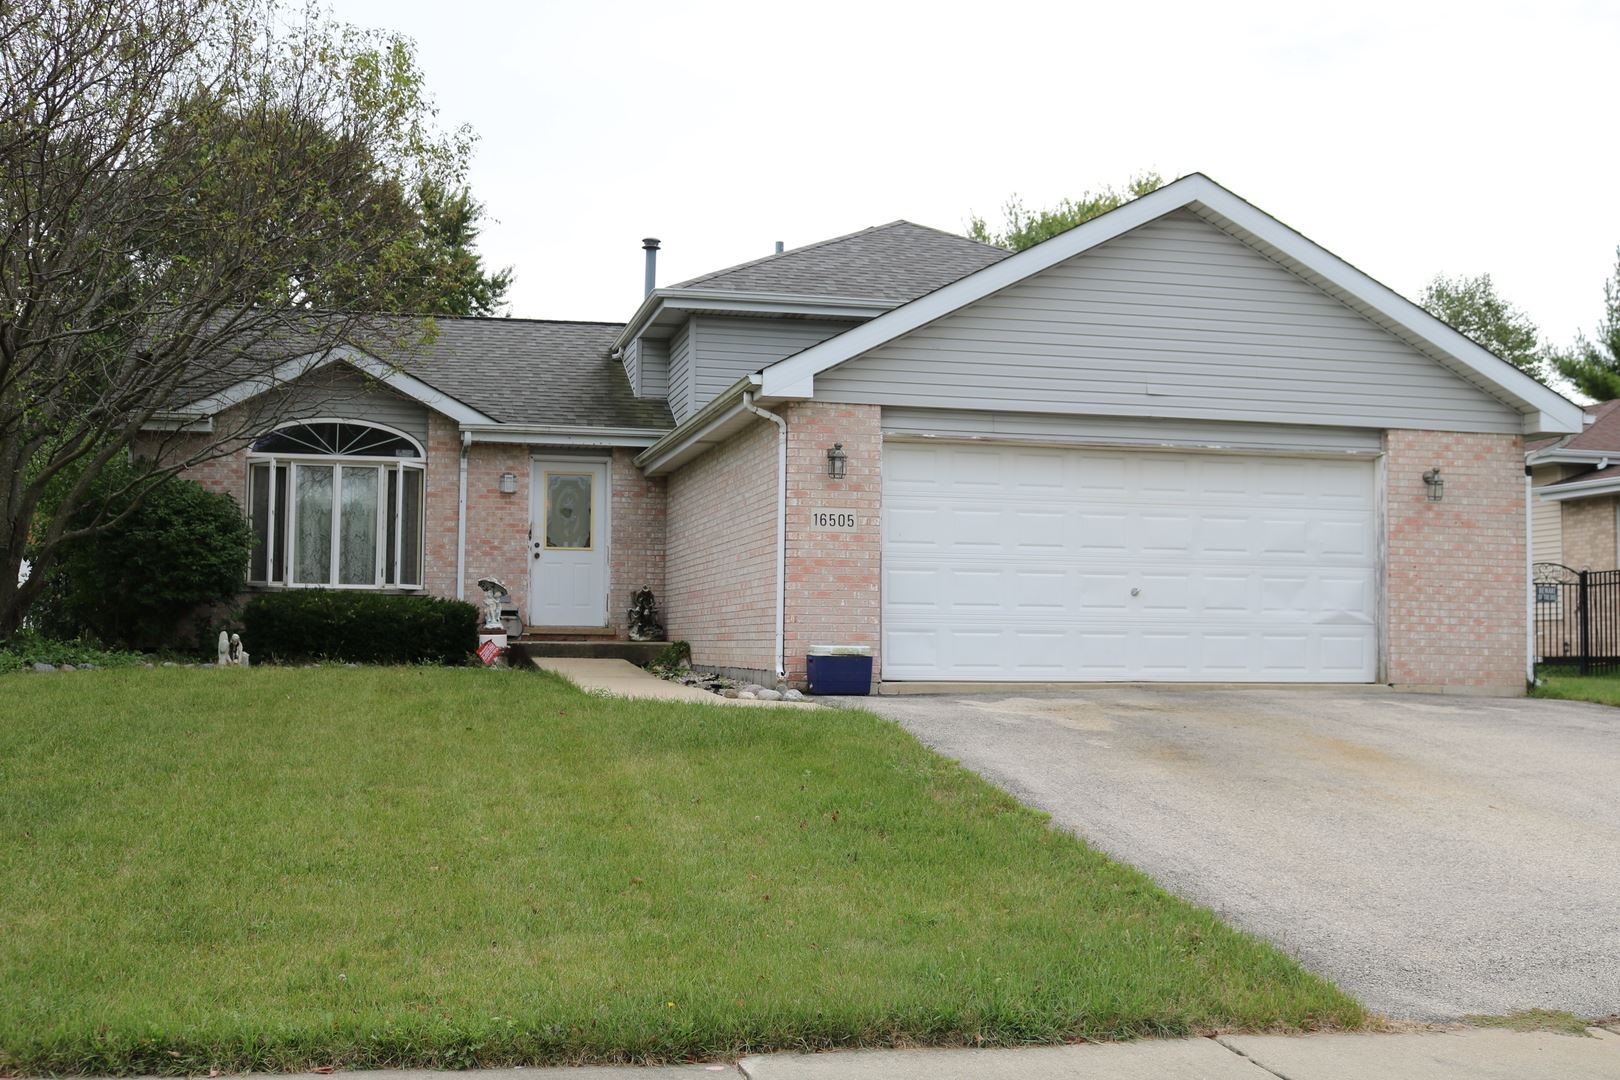 Photo of 16505 Timberview Drive, Plainfield, IL 60586 (MLS # 10855334)